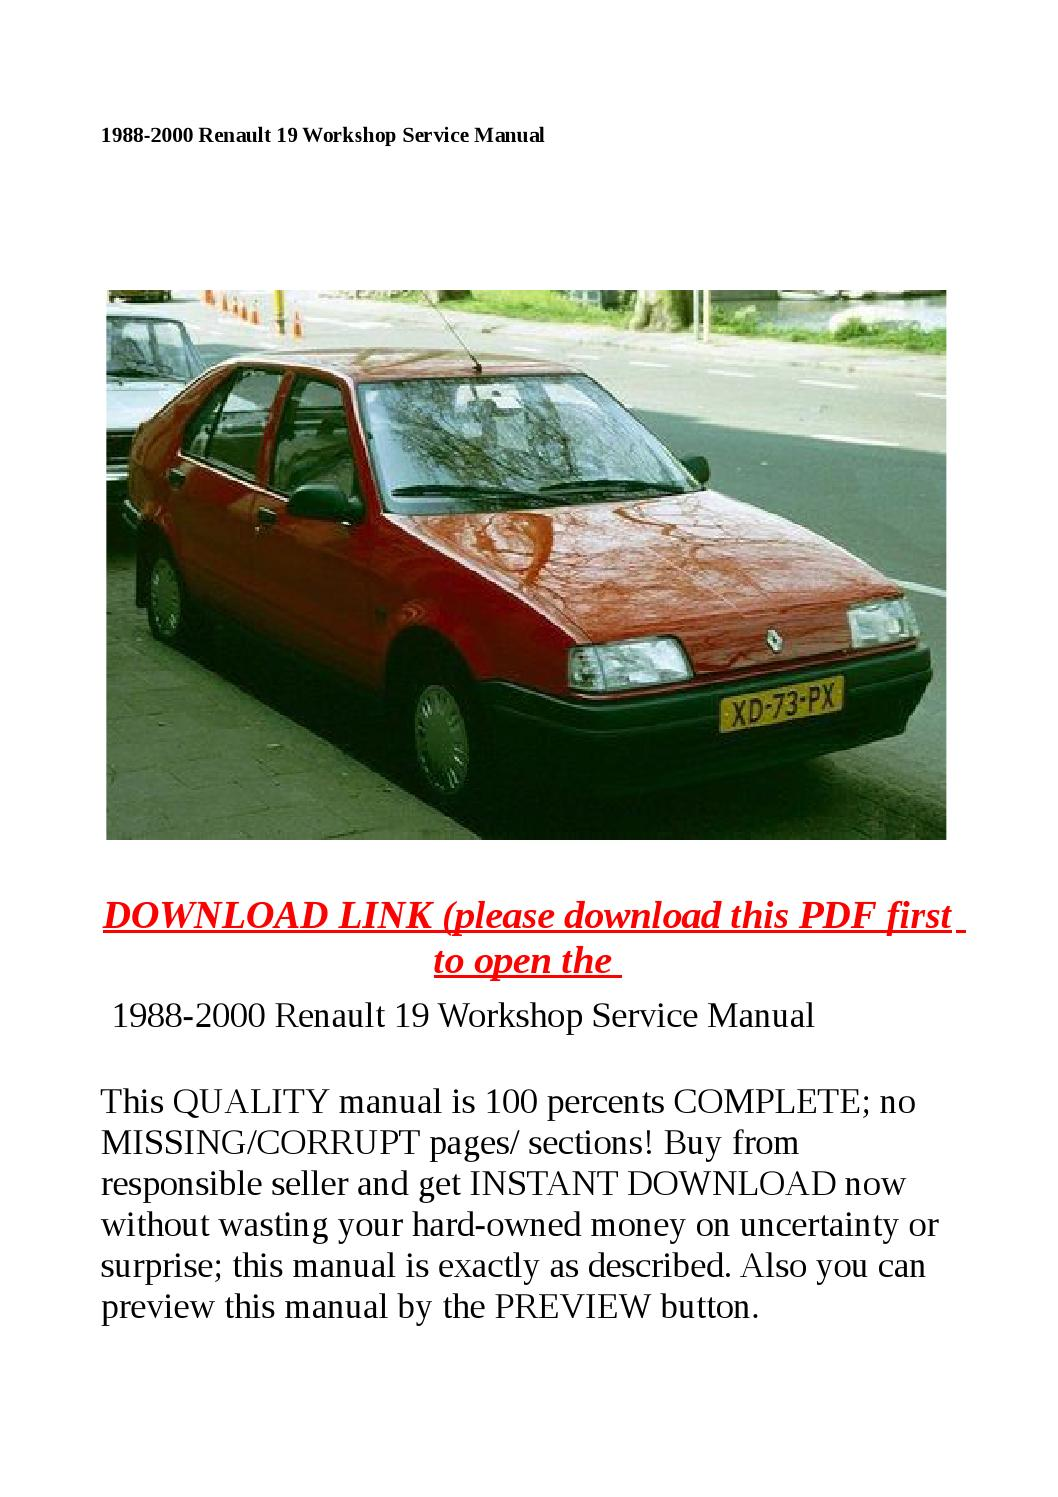 1988 2000 renault 19 workshop service manual by sally mool System Mechanic 11.7.1 System Mechanic 11.7.1